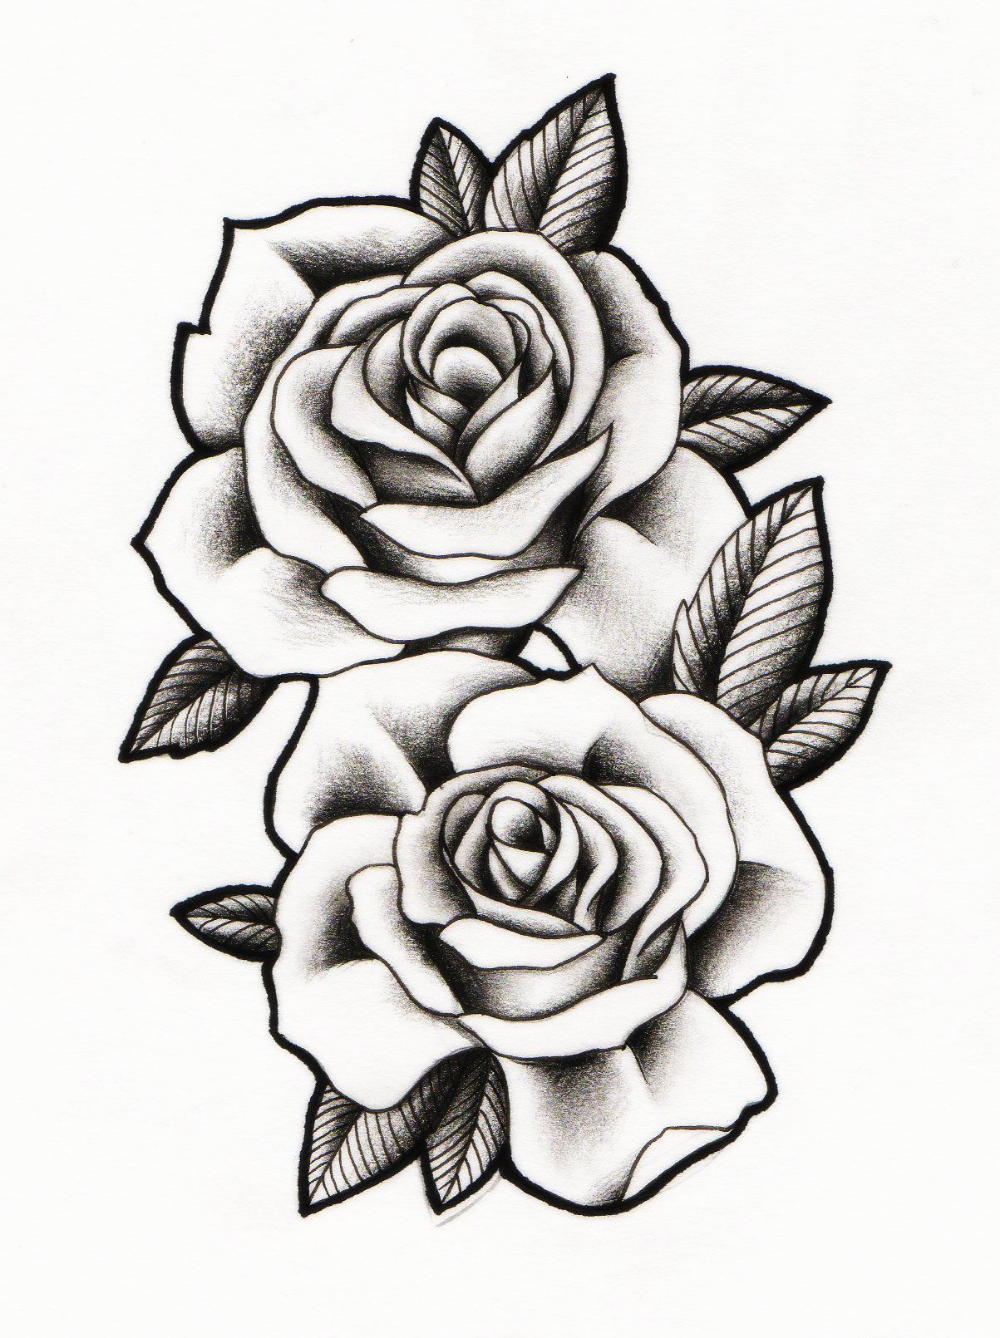 1203x1610 Rose Drawing Neo Traditional For Free Download Rose Drawing Tattoo Rose Tattoos Rose Tattoo Design